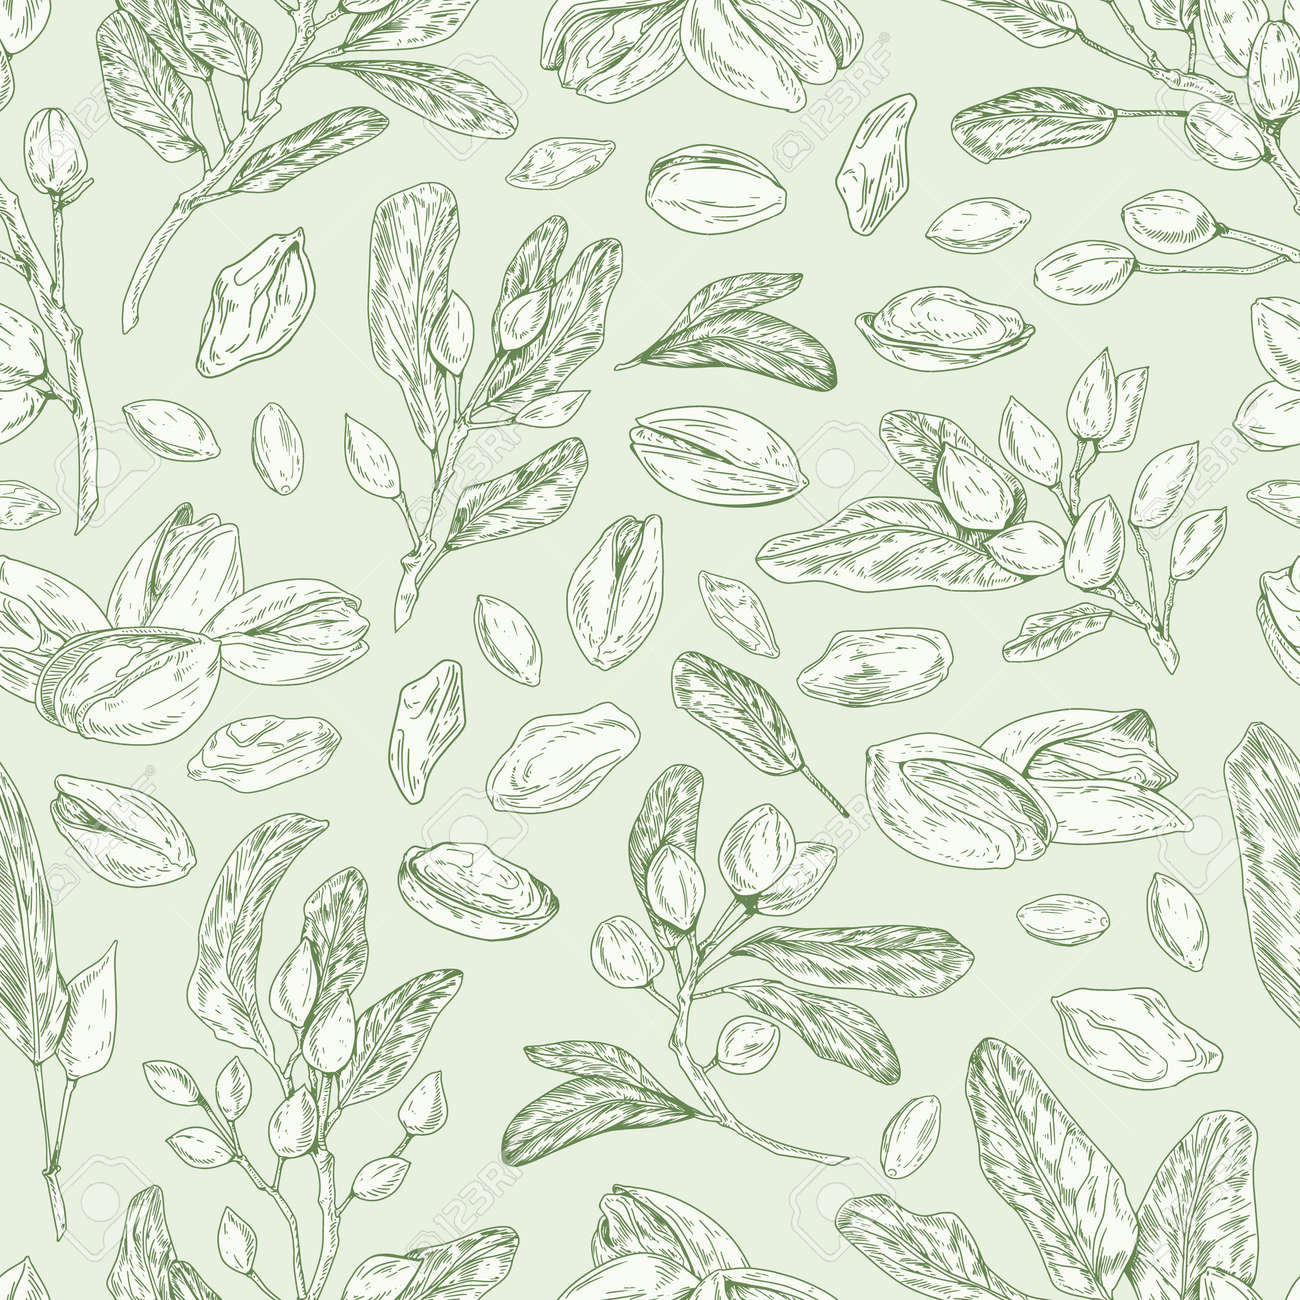 Seamless pistachio pattern with nuts, shells, branches and leaves. Monochrome design of endless monochrome background with pistaches. Hand-drawn colored vector illustration for printing - 164636795